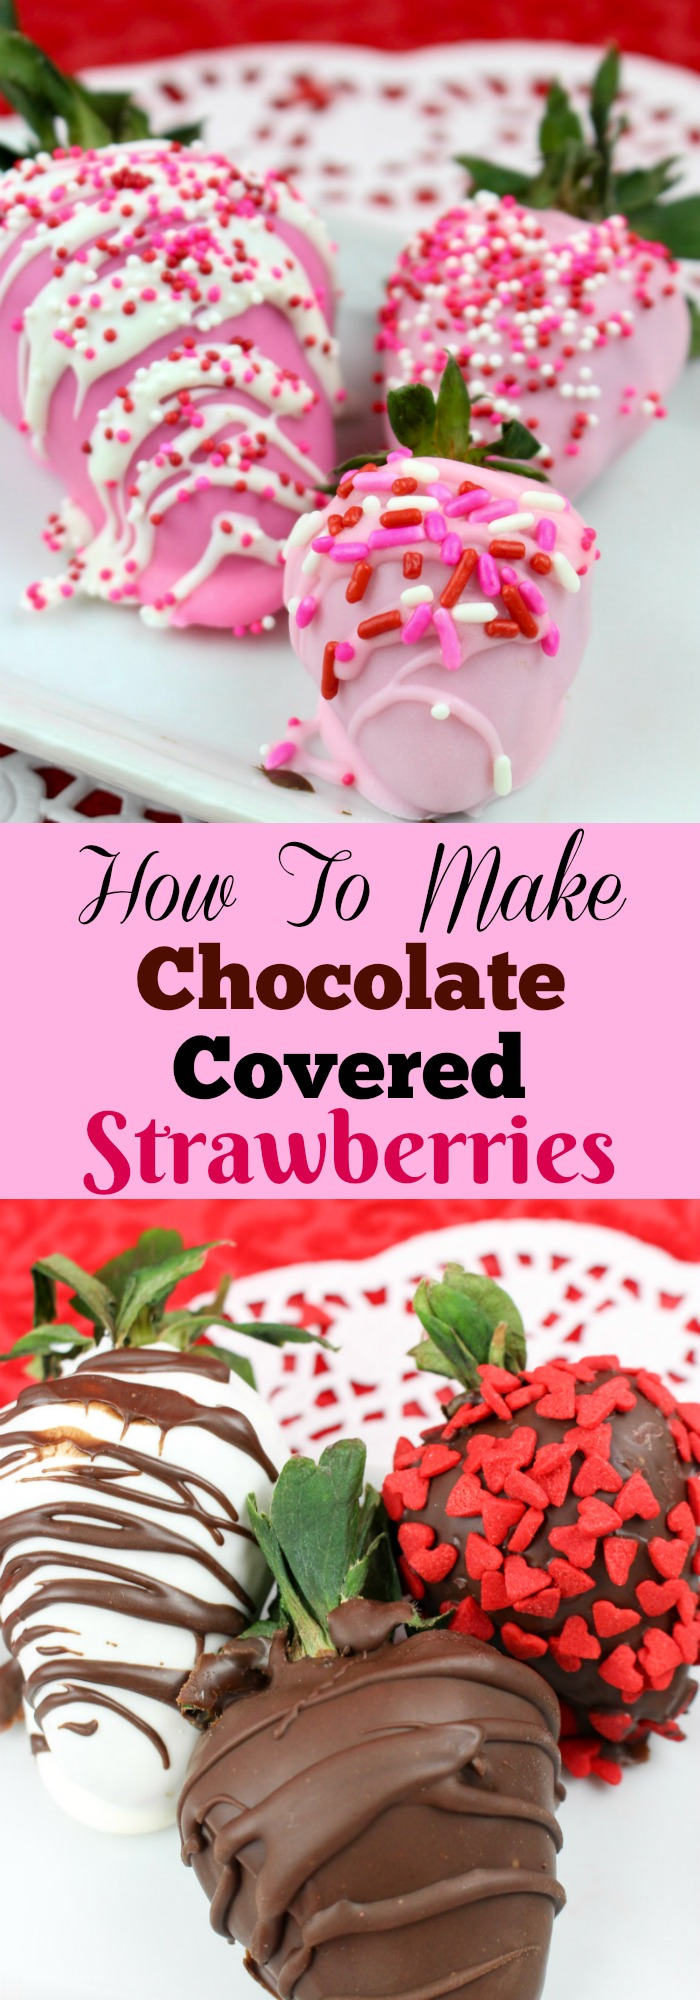 How to Make Chocolate covered strawberries - easy step by step instructions for Valentine's Day ideas, anniversary ideas and more.